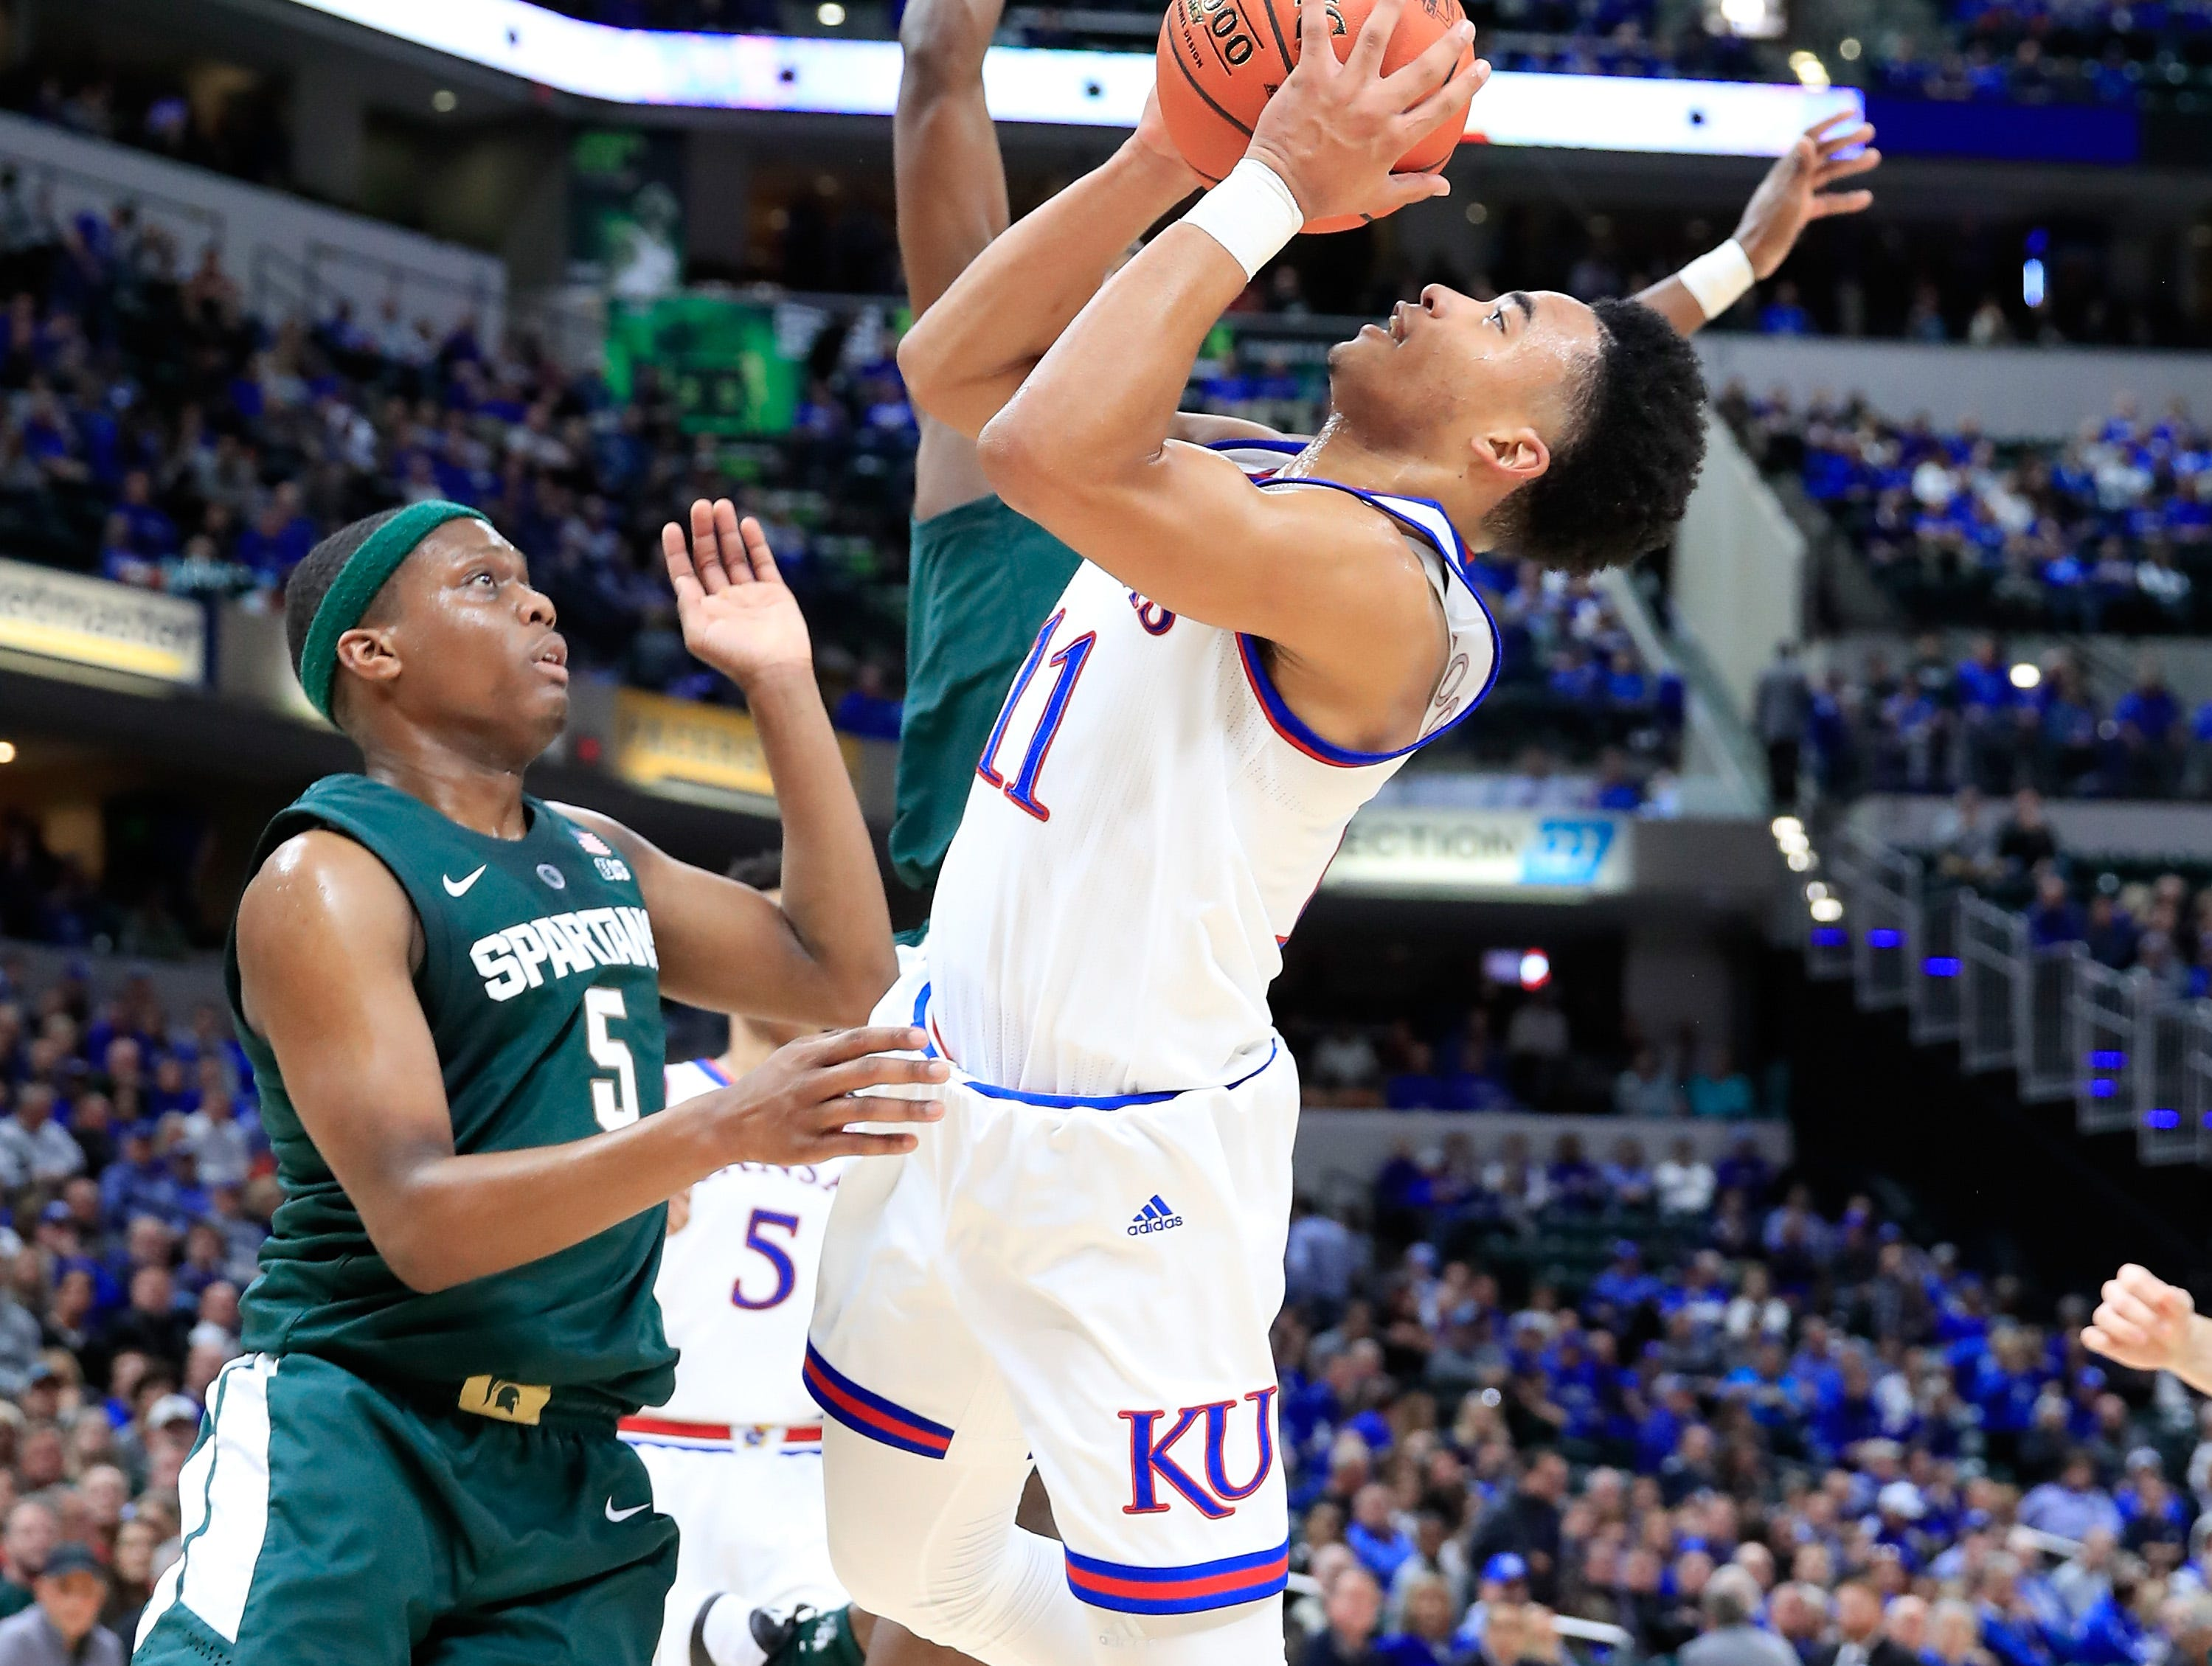 Devon Dotson #11 of the Kansas Jayhawks shoots the ball against the Michigan State Spartans during the State Farm Champions Classic at Bankers Life Fieldhouse on November 6, 2018 in Indianapolis, Indiana.